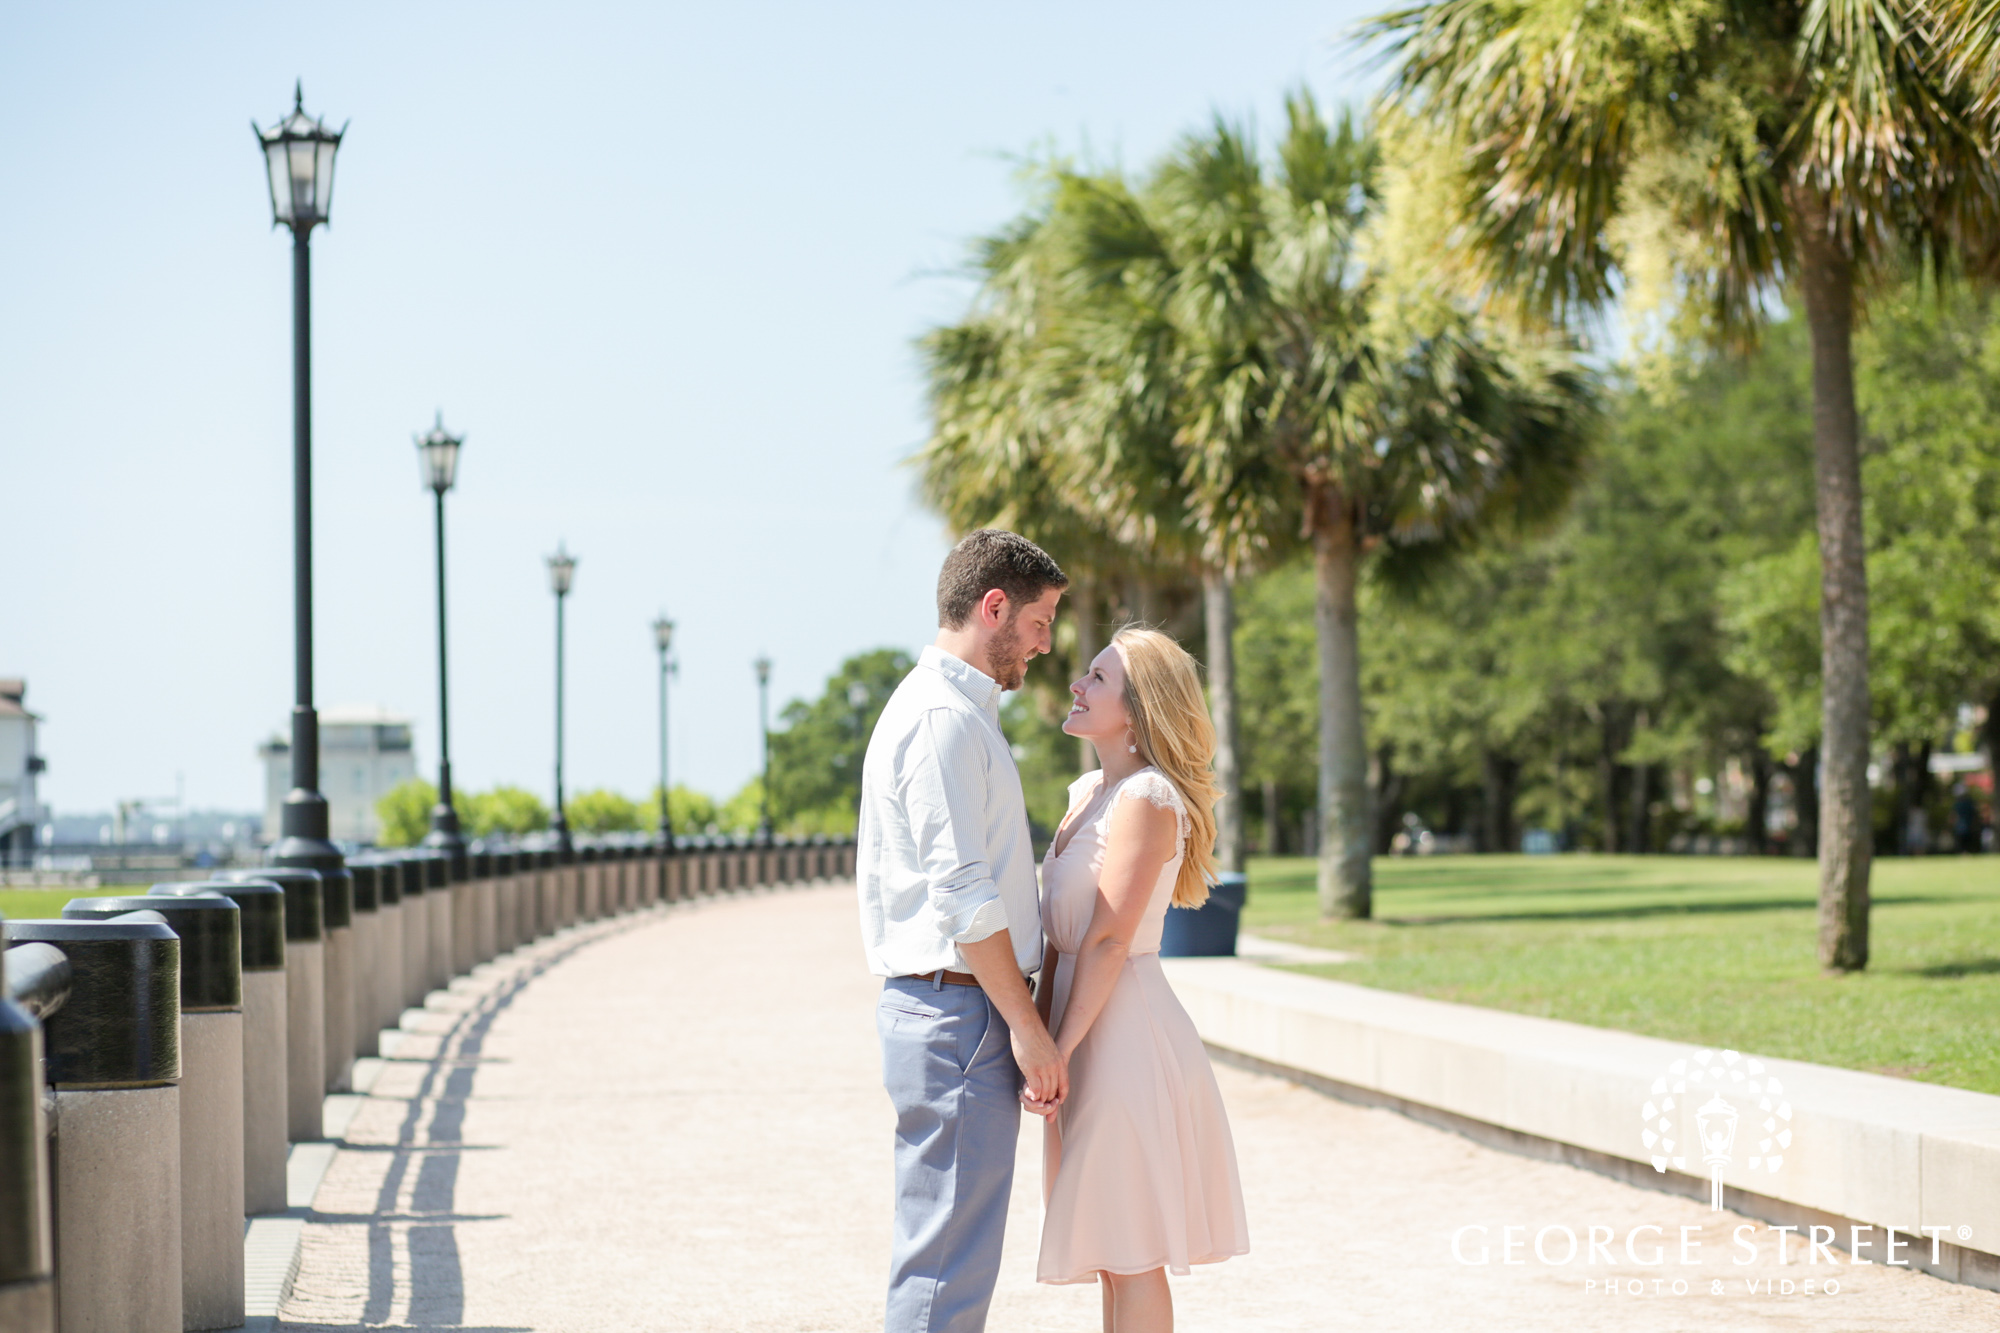 scenic charleston historic district sunny outdoor engagement portraits  2